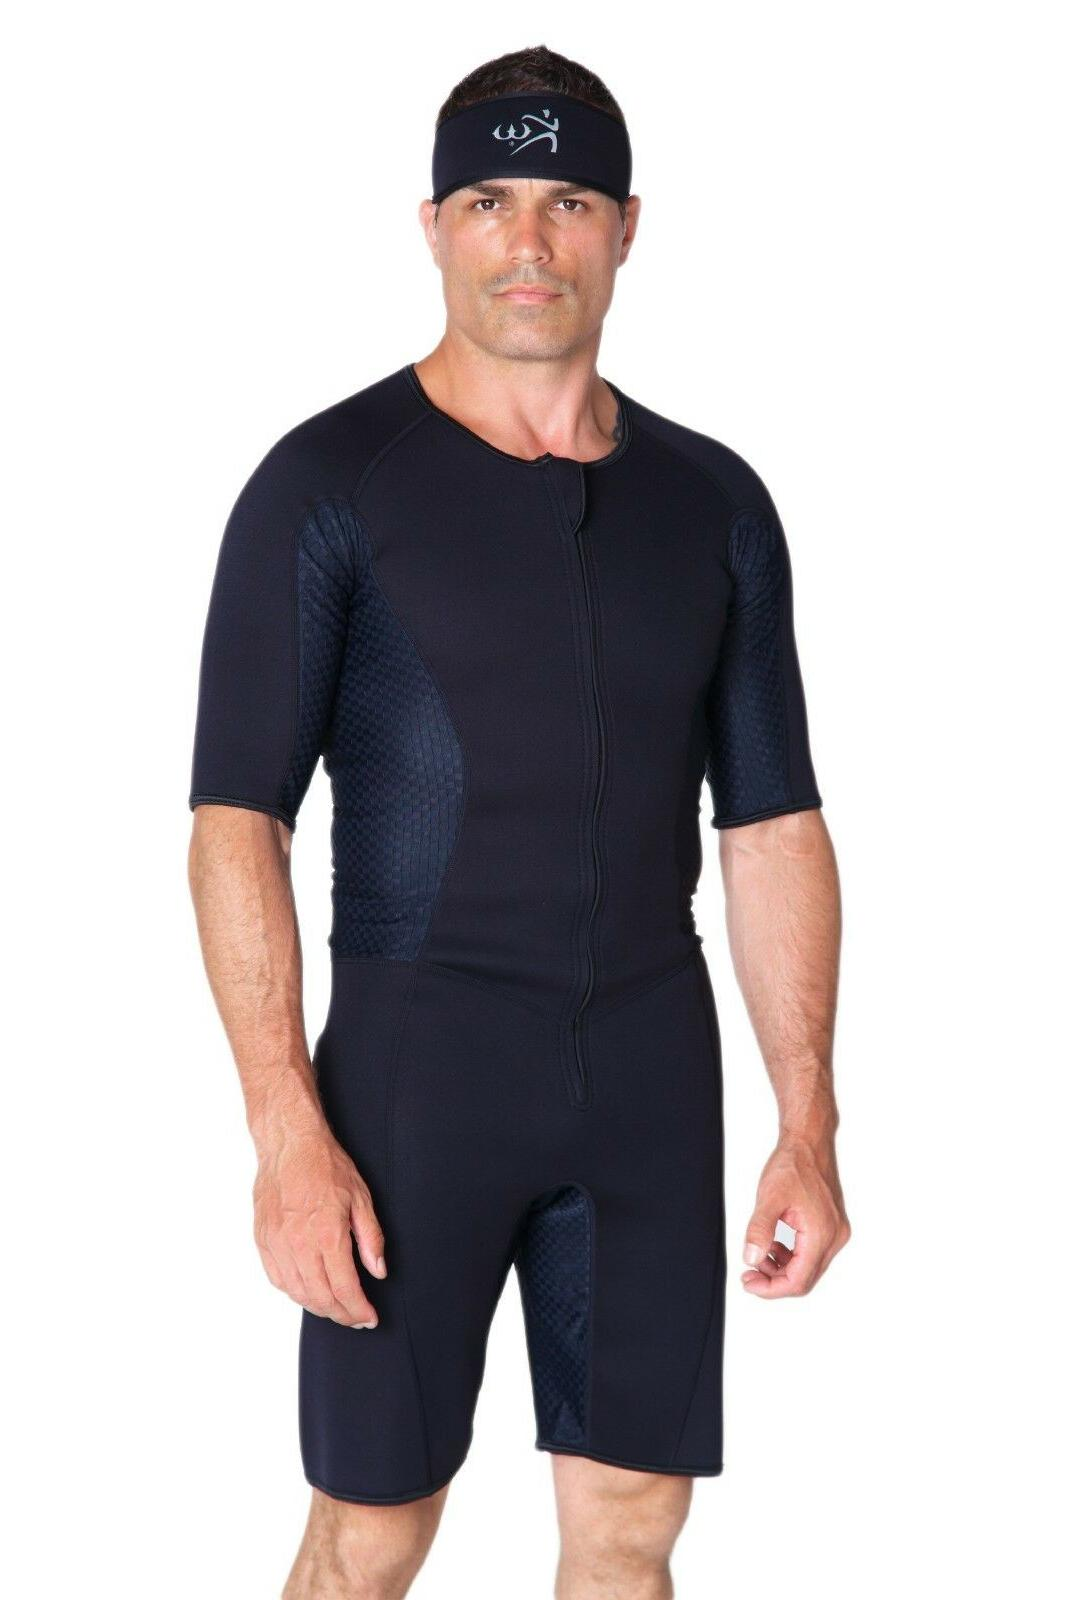 Kutting Weight Loss One-piece Men's Suit Apparel